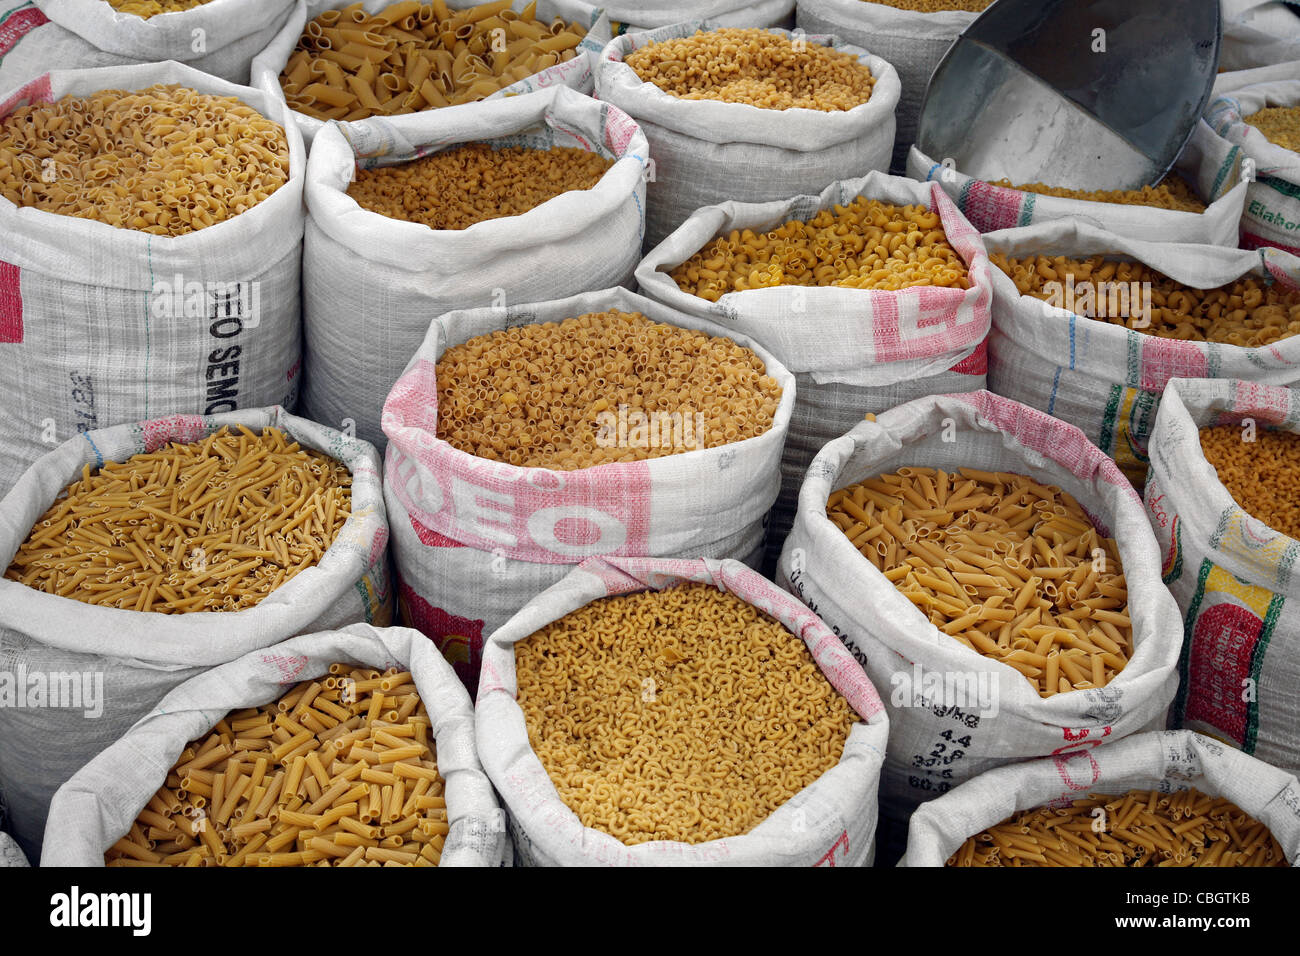 Pasta for sale in large bags on market in Challapata, Altiplano, Bolivia - Stock Image